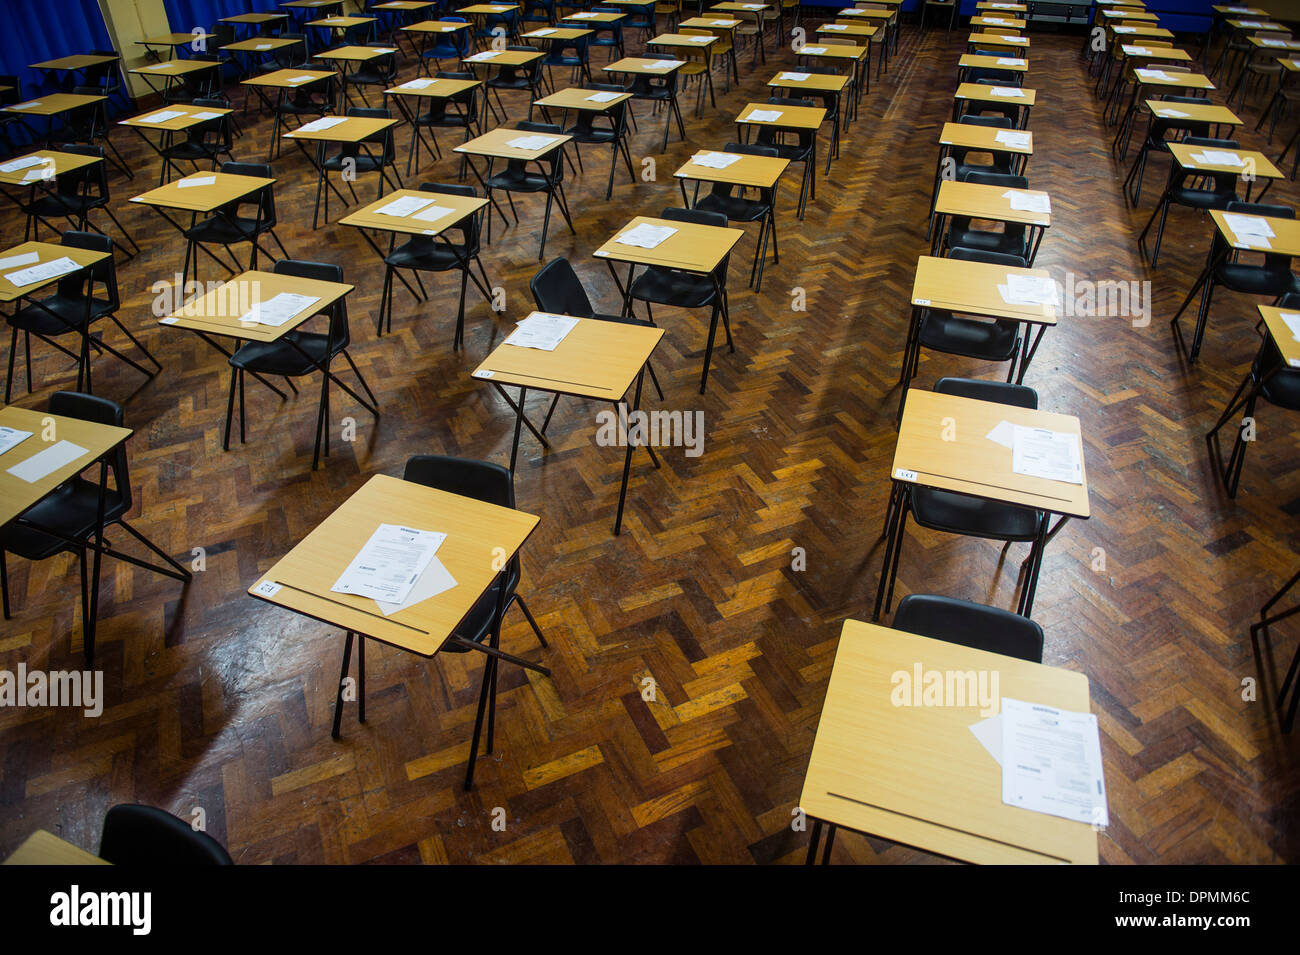 Rows of empty desks ready for Welsh GCSE school pupils to sit their exams in a school hall, Wales UK - Stock Image